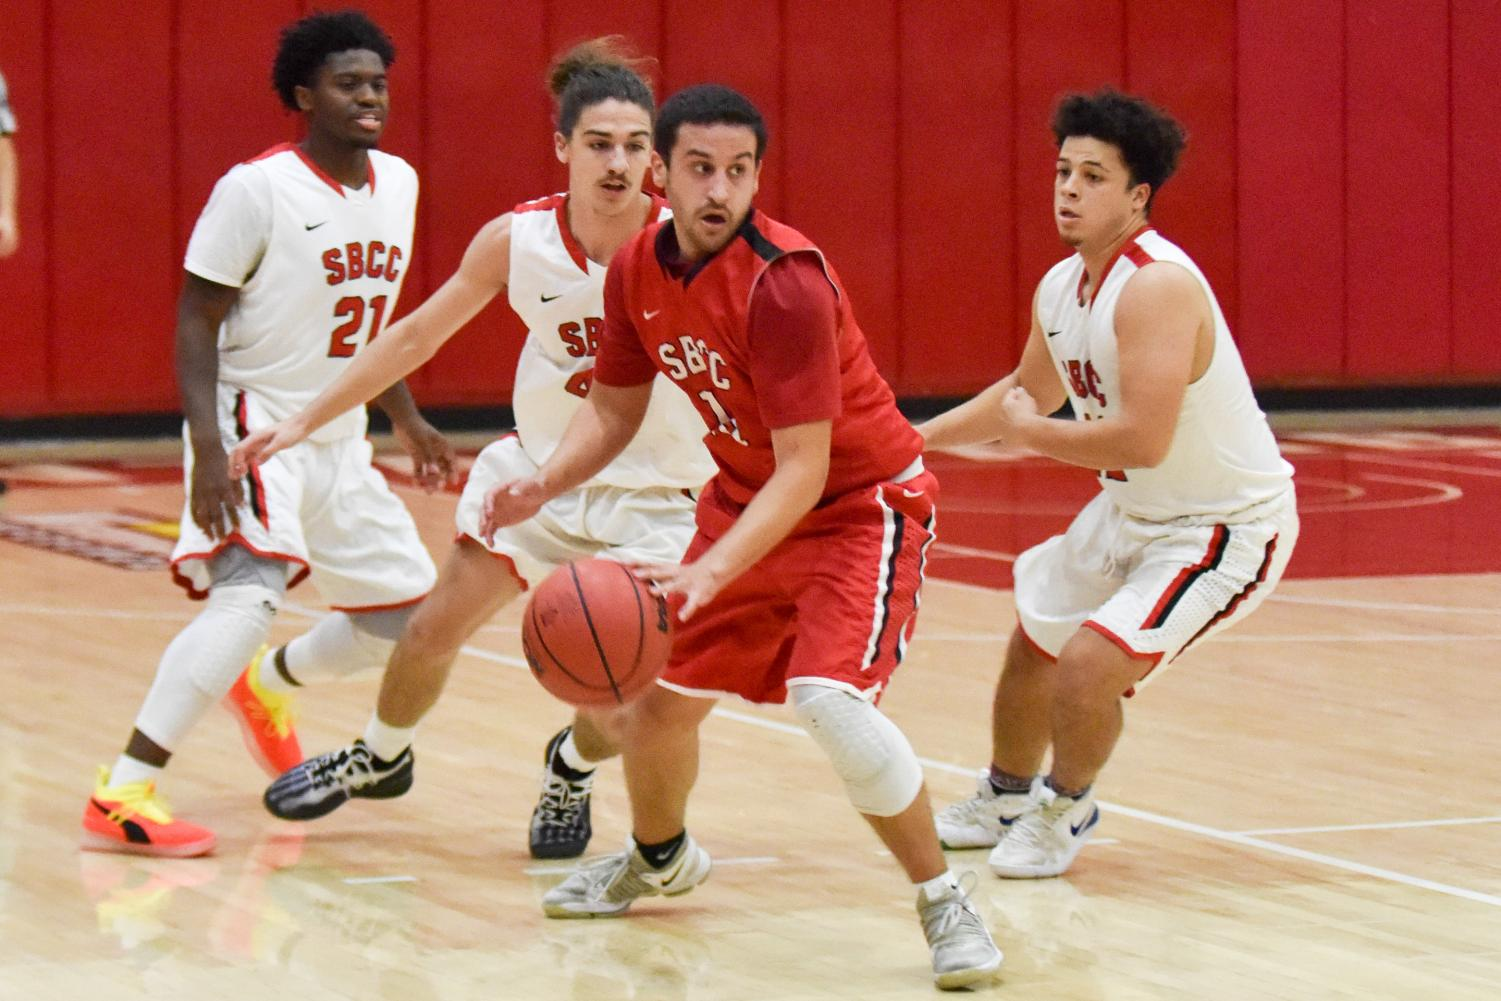 Robert Hutchins (center) alumni from the years 2016 and 2017, looks to pass the ball at the 45th annual alumni basketball game on Thursday, Dec. 6, in the Sports Pavilion gym at City College in Santa Barbara Calif. The current City College team beat the alumni 87-83.